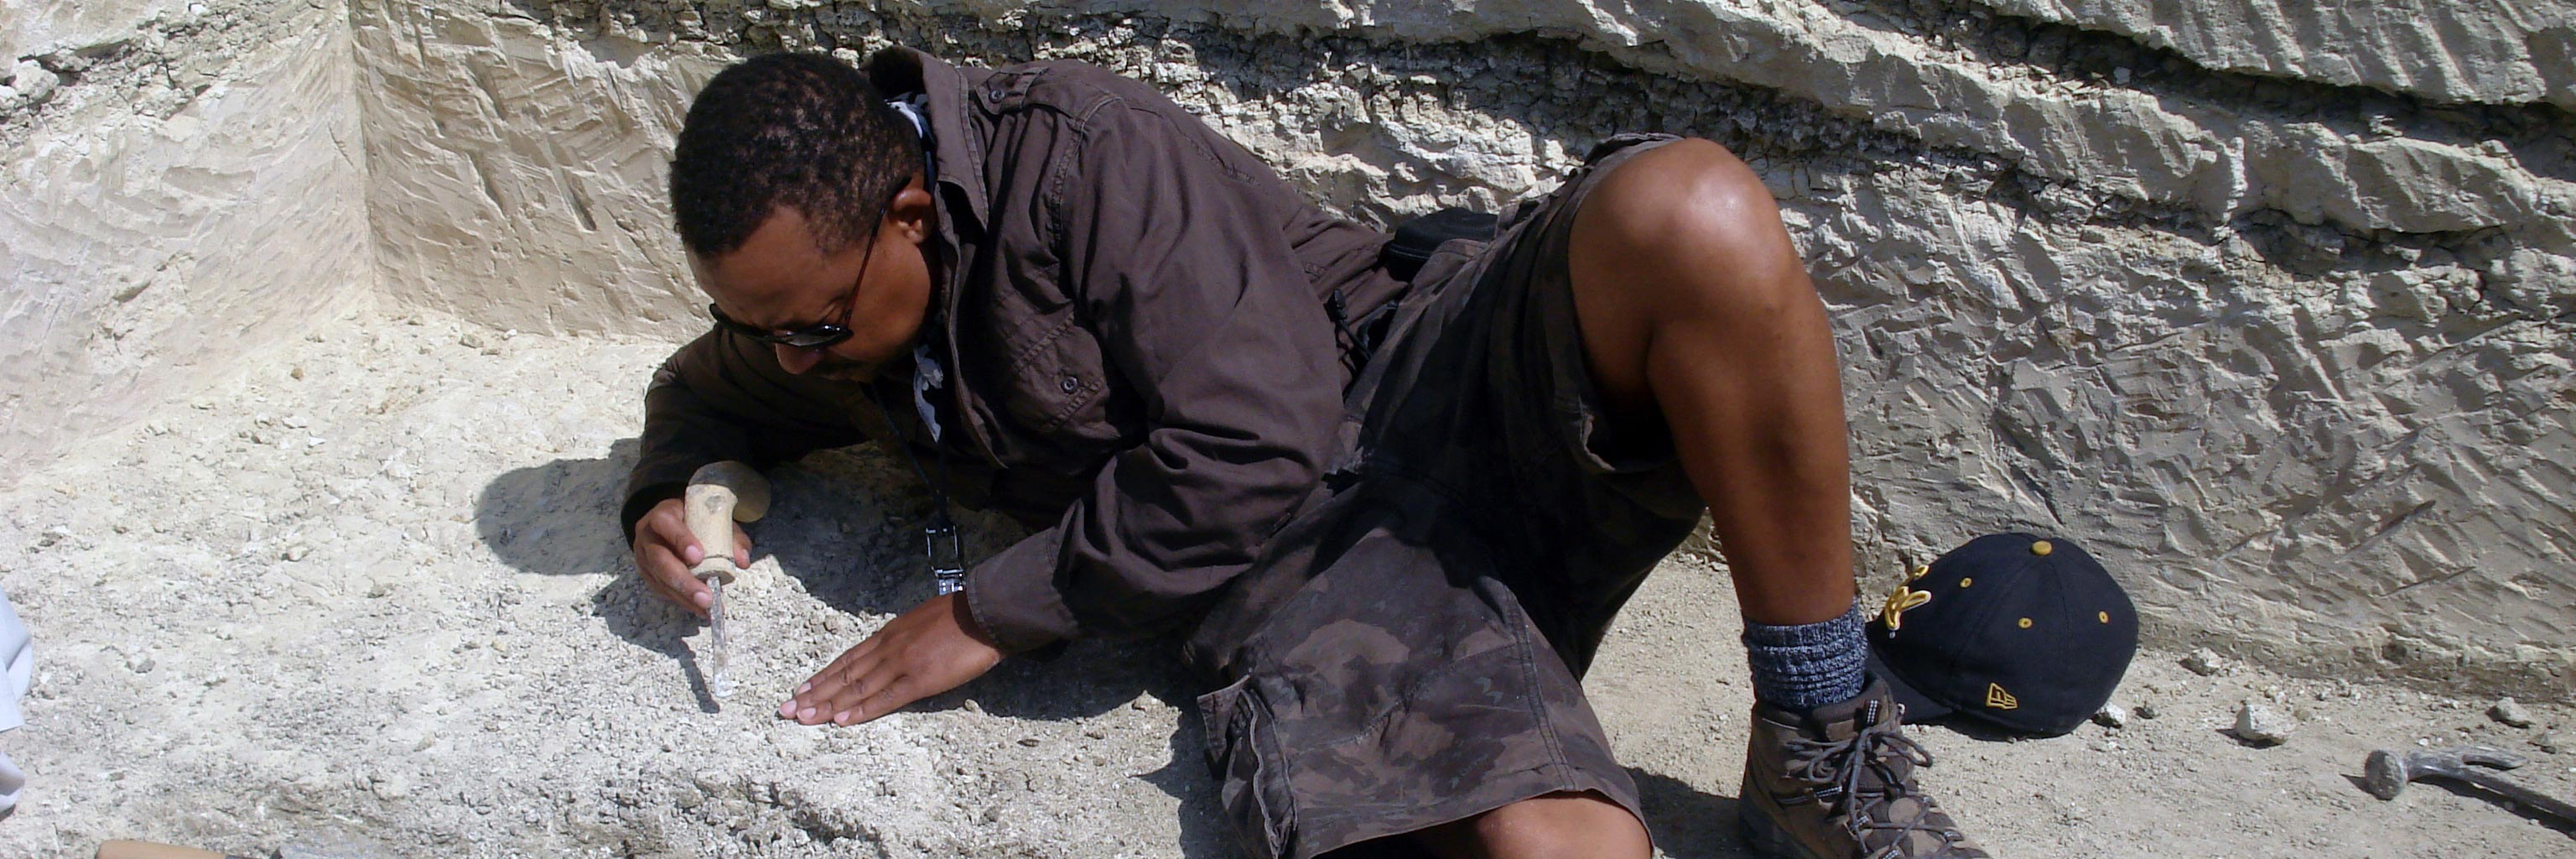 Student performing geological research in the field